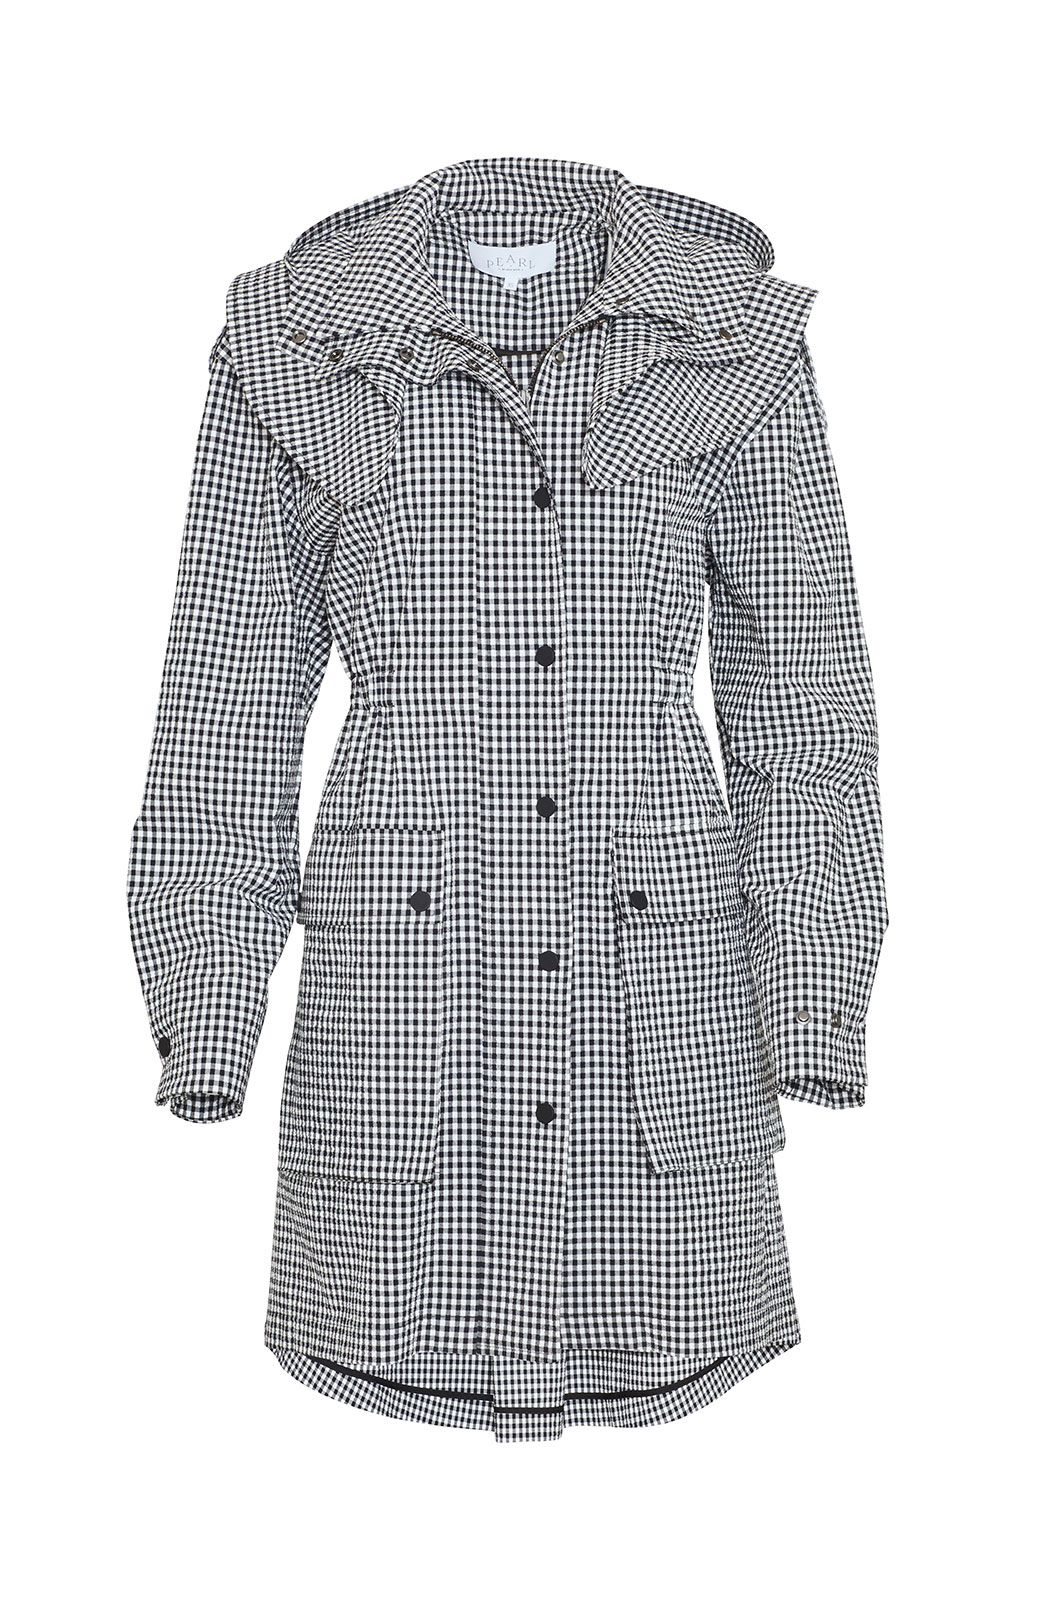 <ul><li>Checked seersucker anorak jacket with removable hood</li><li>Concealed front zipper and snap fastening with elastic waistband</li><li>Designed for a relaxed fit</li><li>96% Cotton, 4% Elastane</li><li>Dry clean</li><li>Made in USA</li></ul>